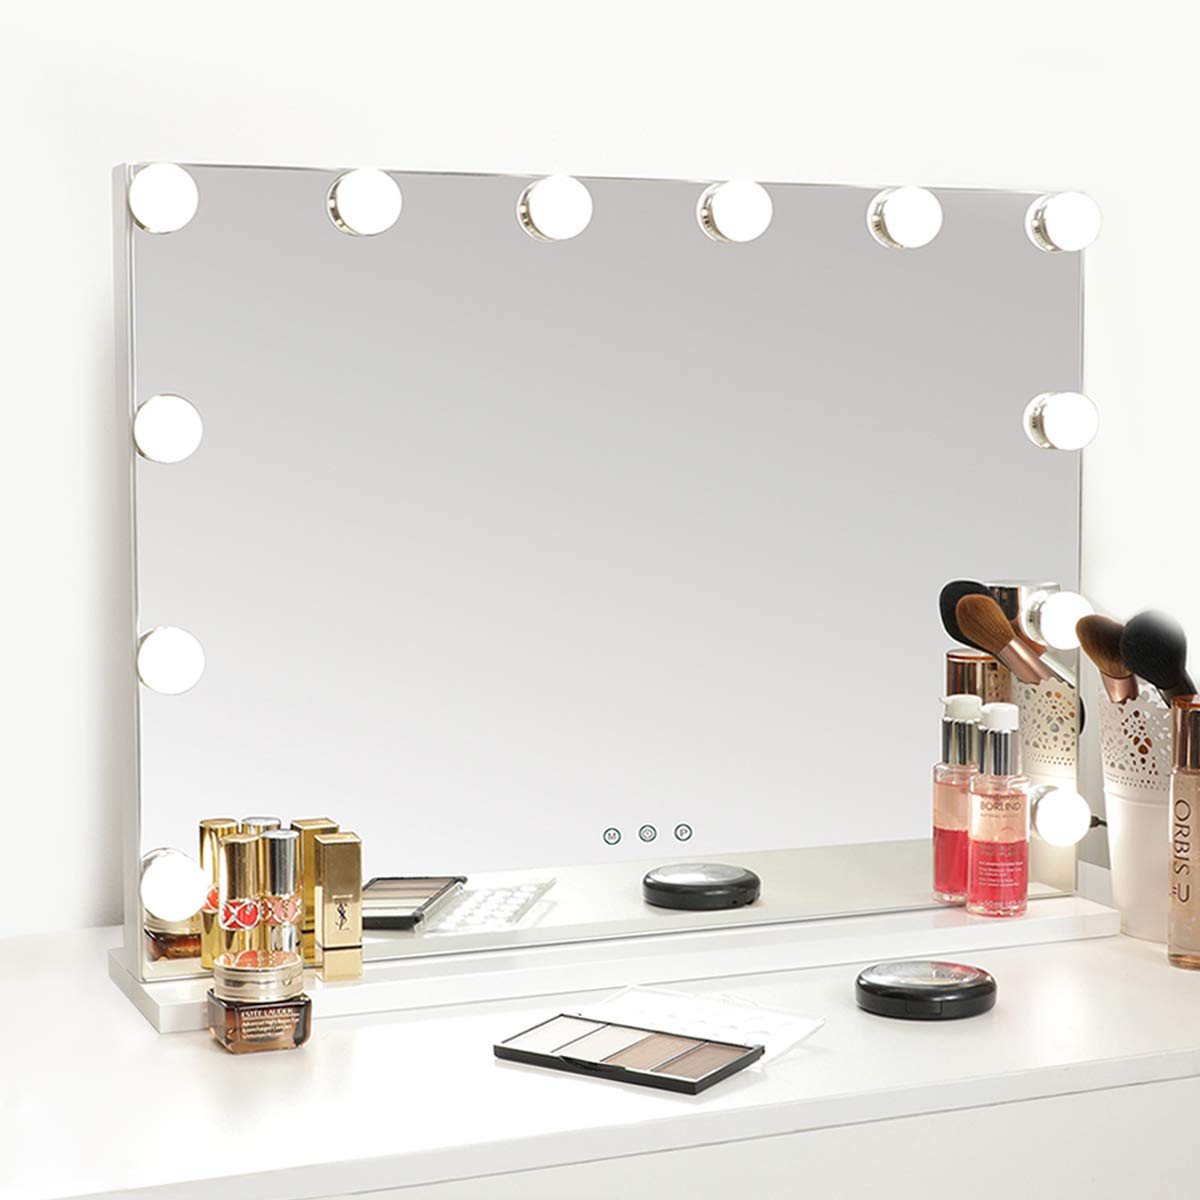 SHOWTIMEZ Vanity Mirror with Lights Hollywood Lighted Makeup Mirror with Dimmer, Adjustable 3 Lighting Color, Tabletop Mirror with USB Port, Touch Screen Control, White, 22.8x16.9inch